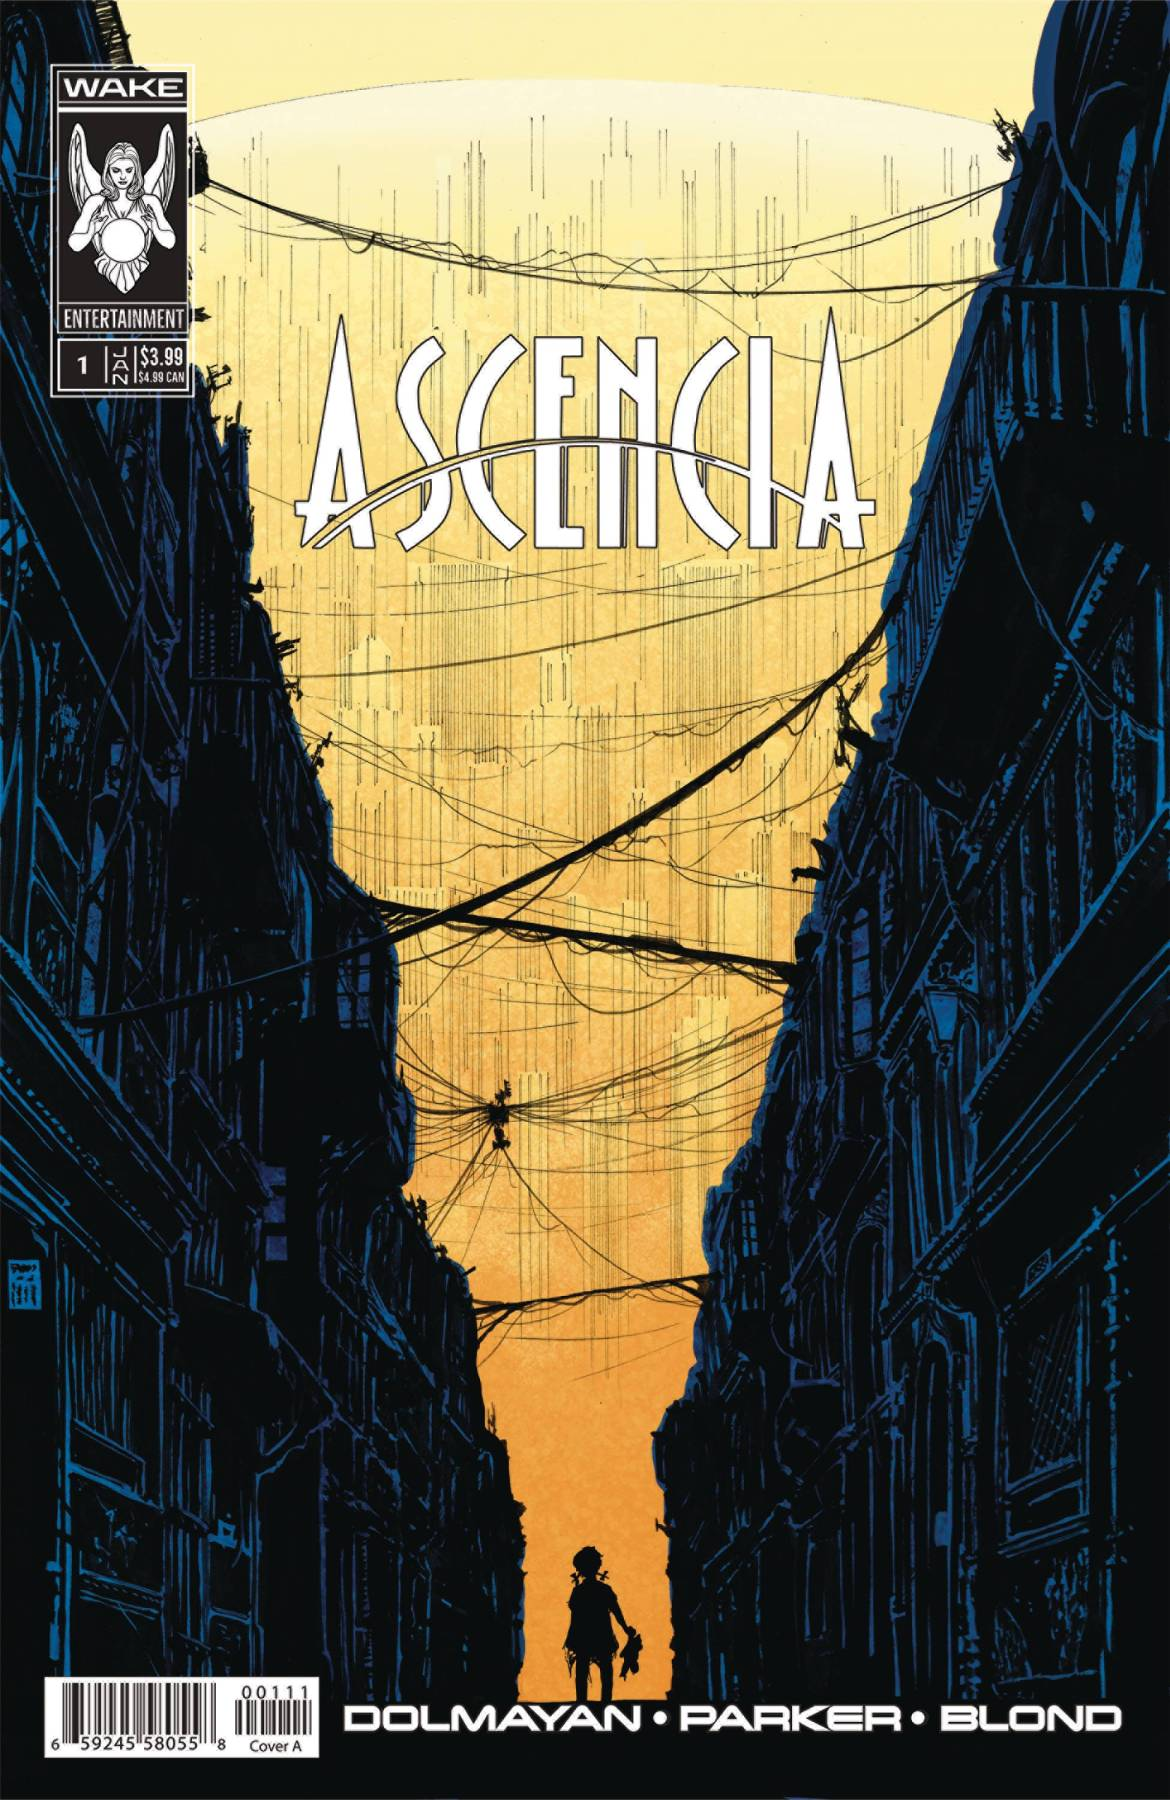 STL173025 ComicList: New Comic Book Releases List for 01/13/2021 (2 Weeks Out)